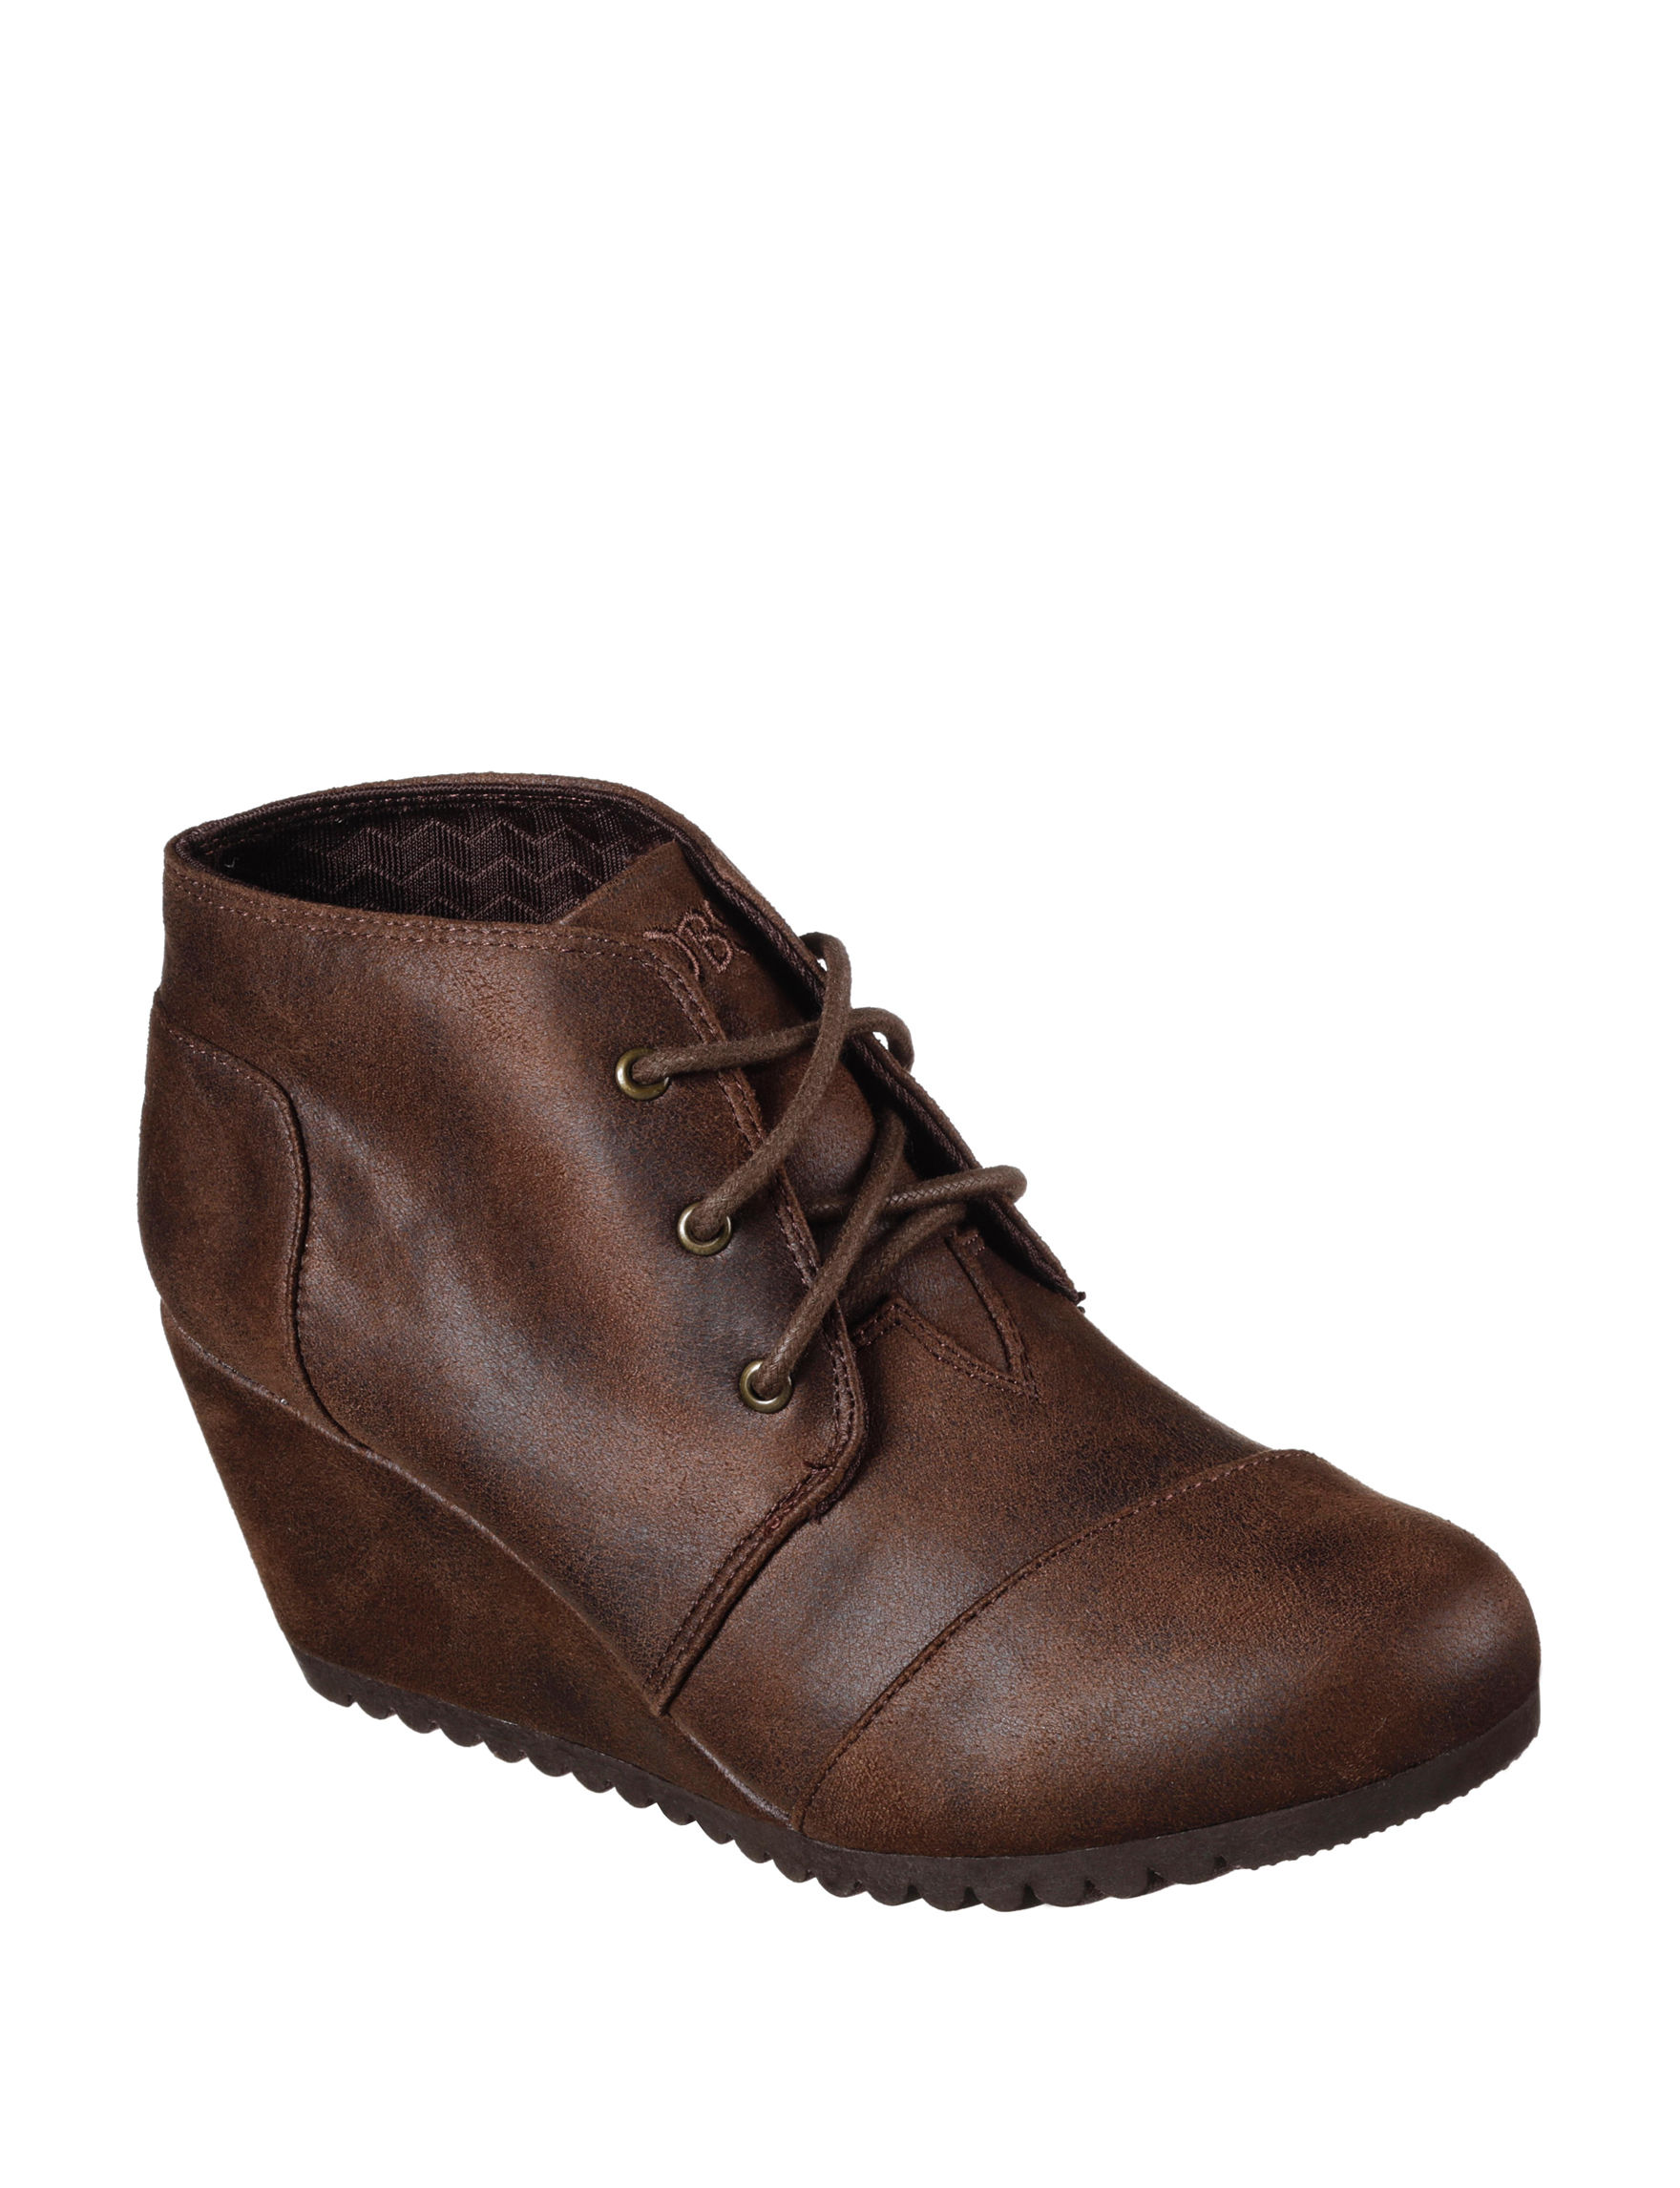 Skechers Brown Ankle Boots & Booties Wedge Boots